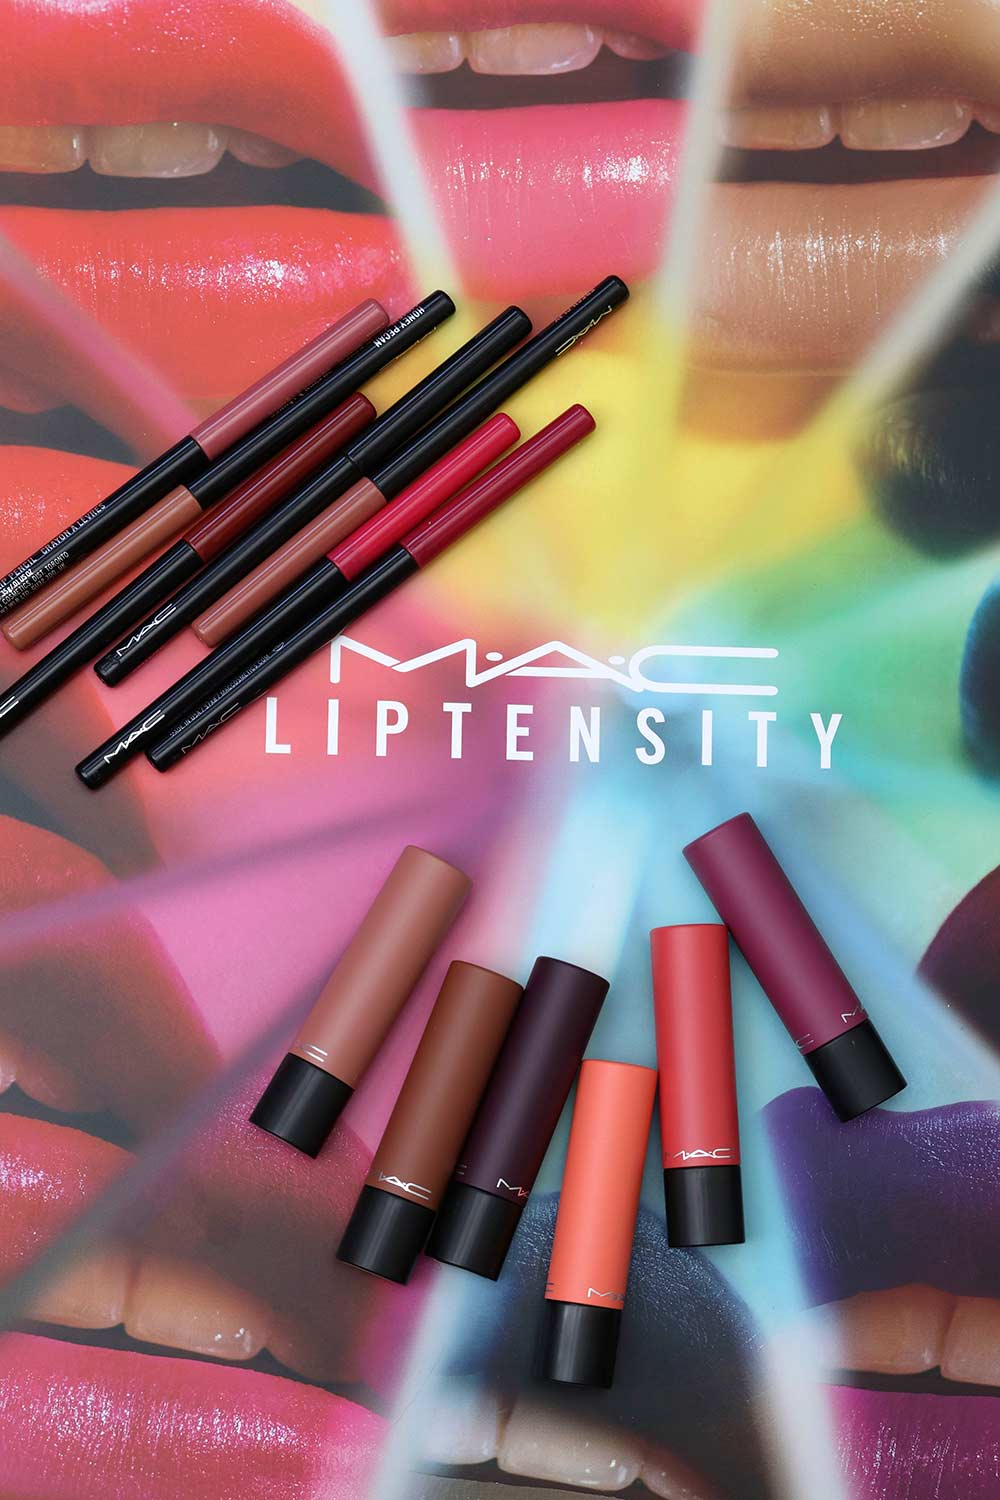 mac liptensity lipsticks lip pencils